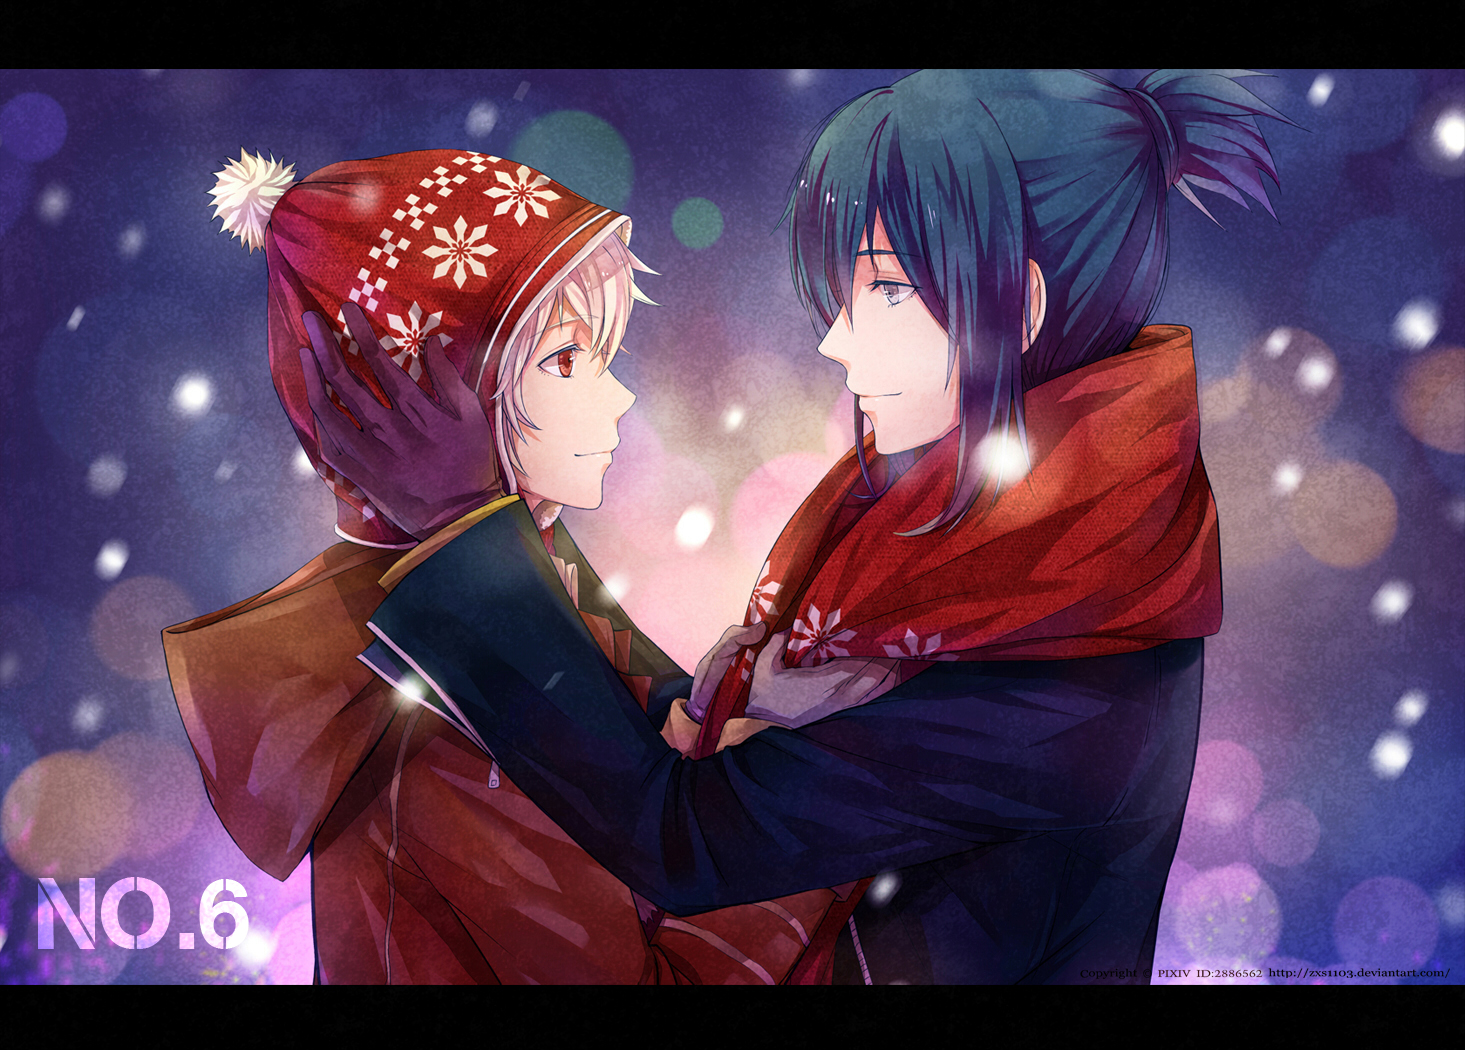 No Love Boy Wallpaper : NezumixShion images Nezumi & Shion HD wallpaper and ...